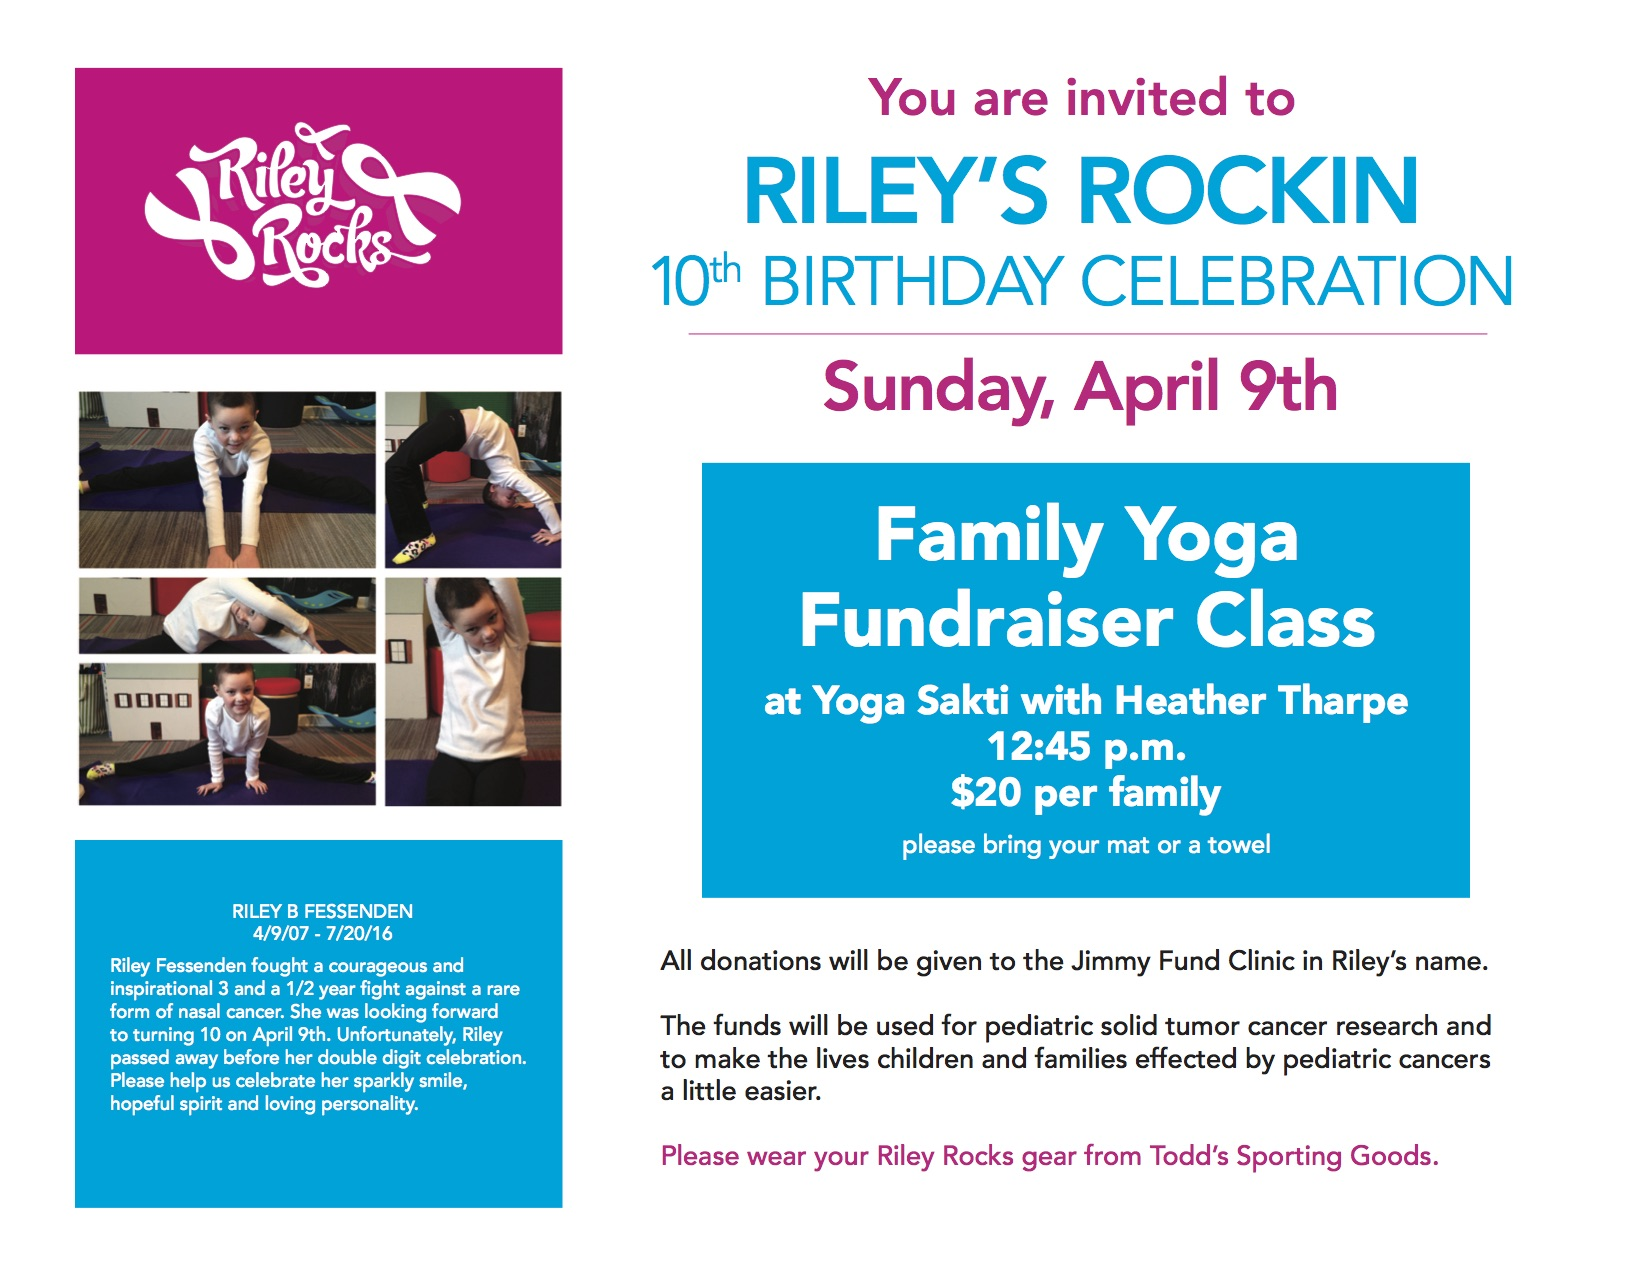 Yogasakti Is Honored To Host A Family Yoga Benefit For Riley Fessenden Celebrate What Would Have Been Her Daughters 10th Birthday On Sunday April 9th